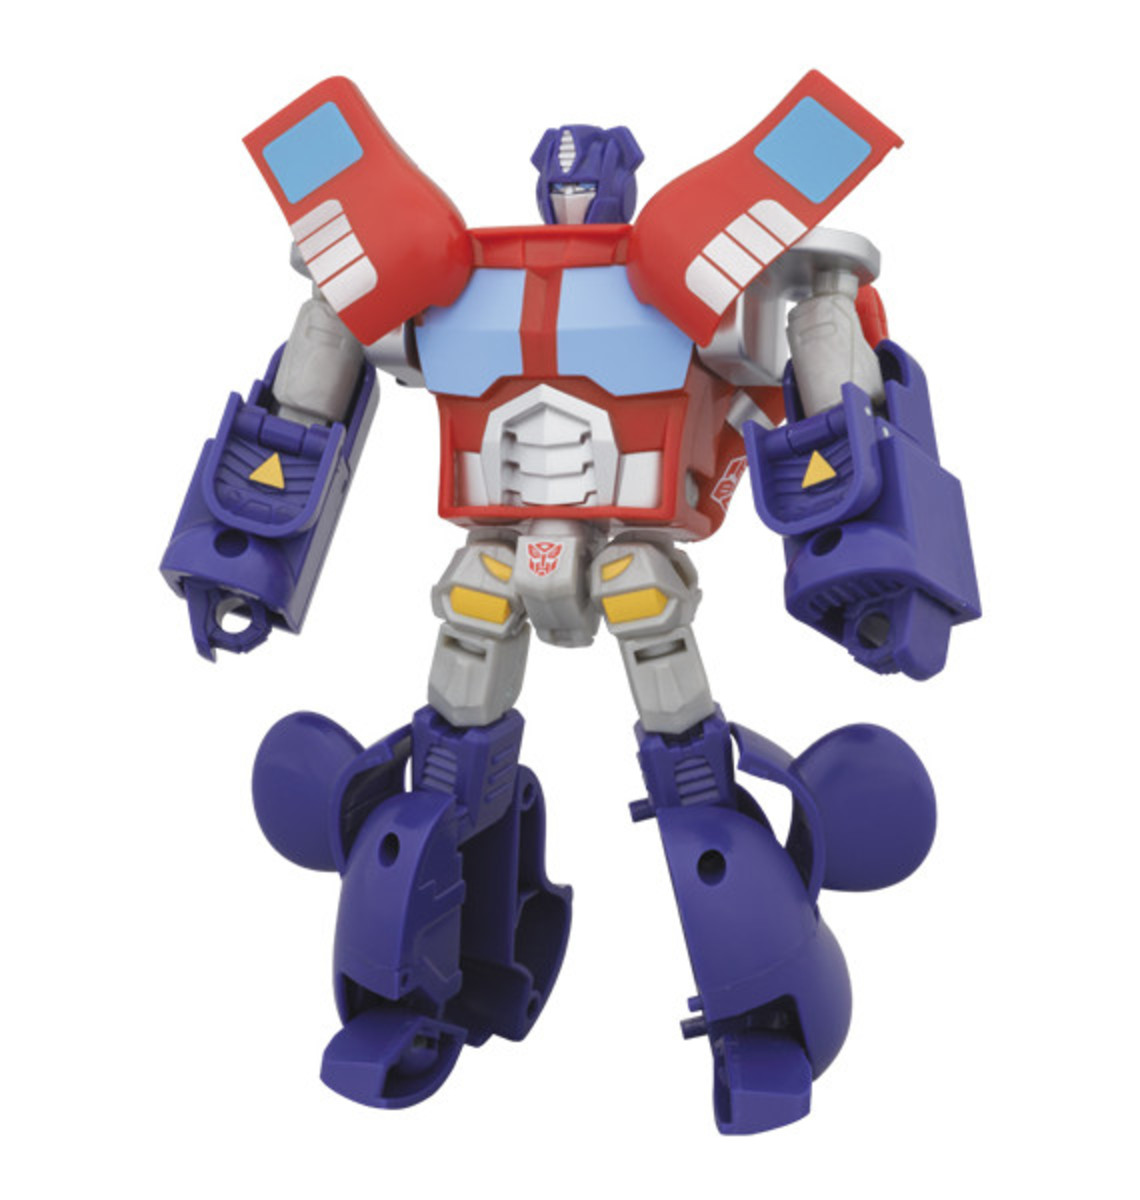 transformers-medicom-toy-transformable-bearbrick-200-percent-set-07